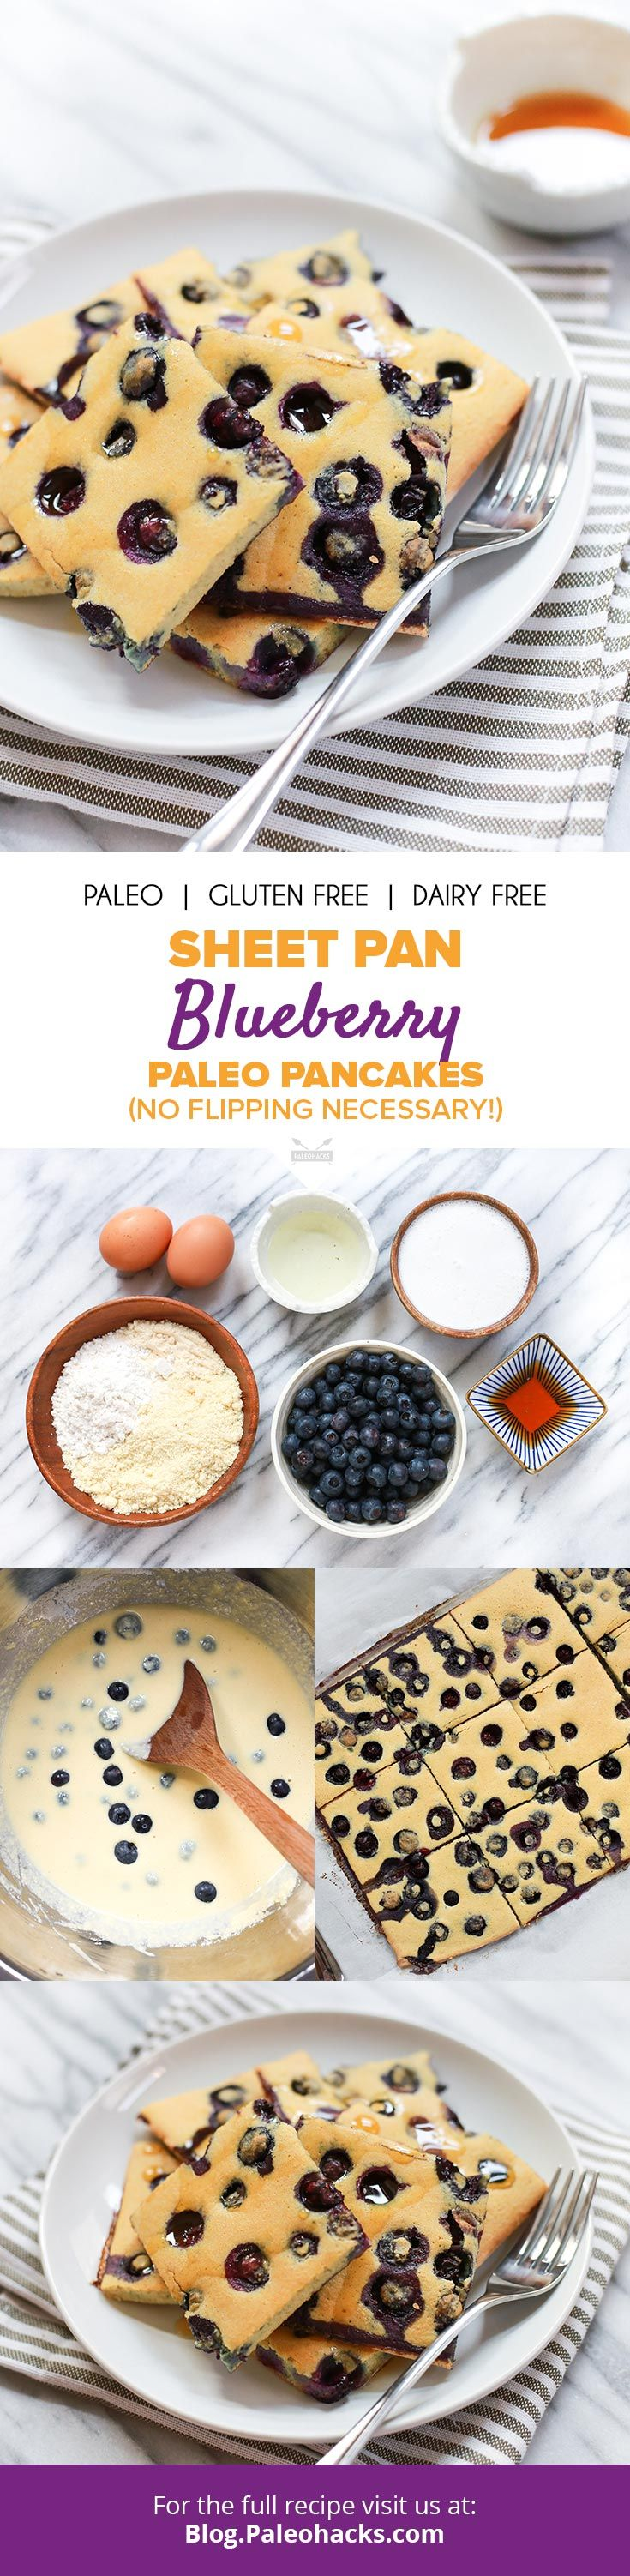 Whip up a big batch of blueberry pancakes right in the oven with this easy sheet pan recipe! Get the full recipe here: http://paleo.co/SPblueberrypancakes